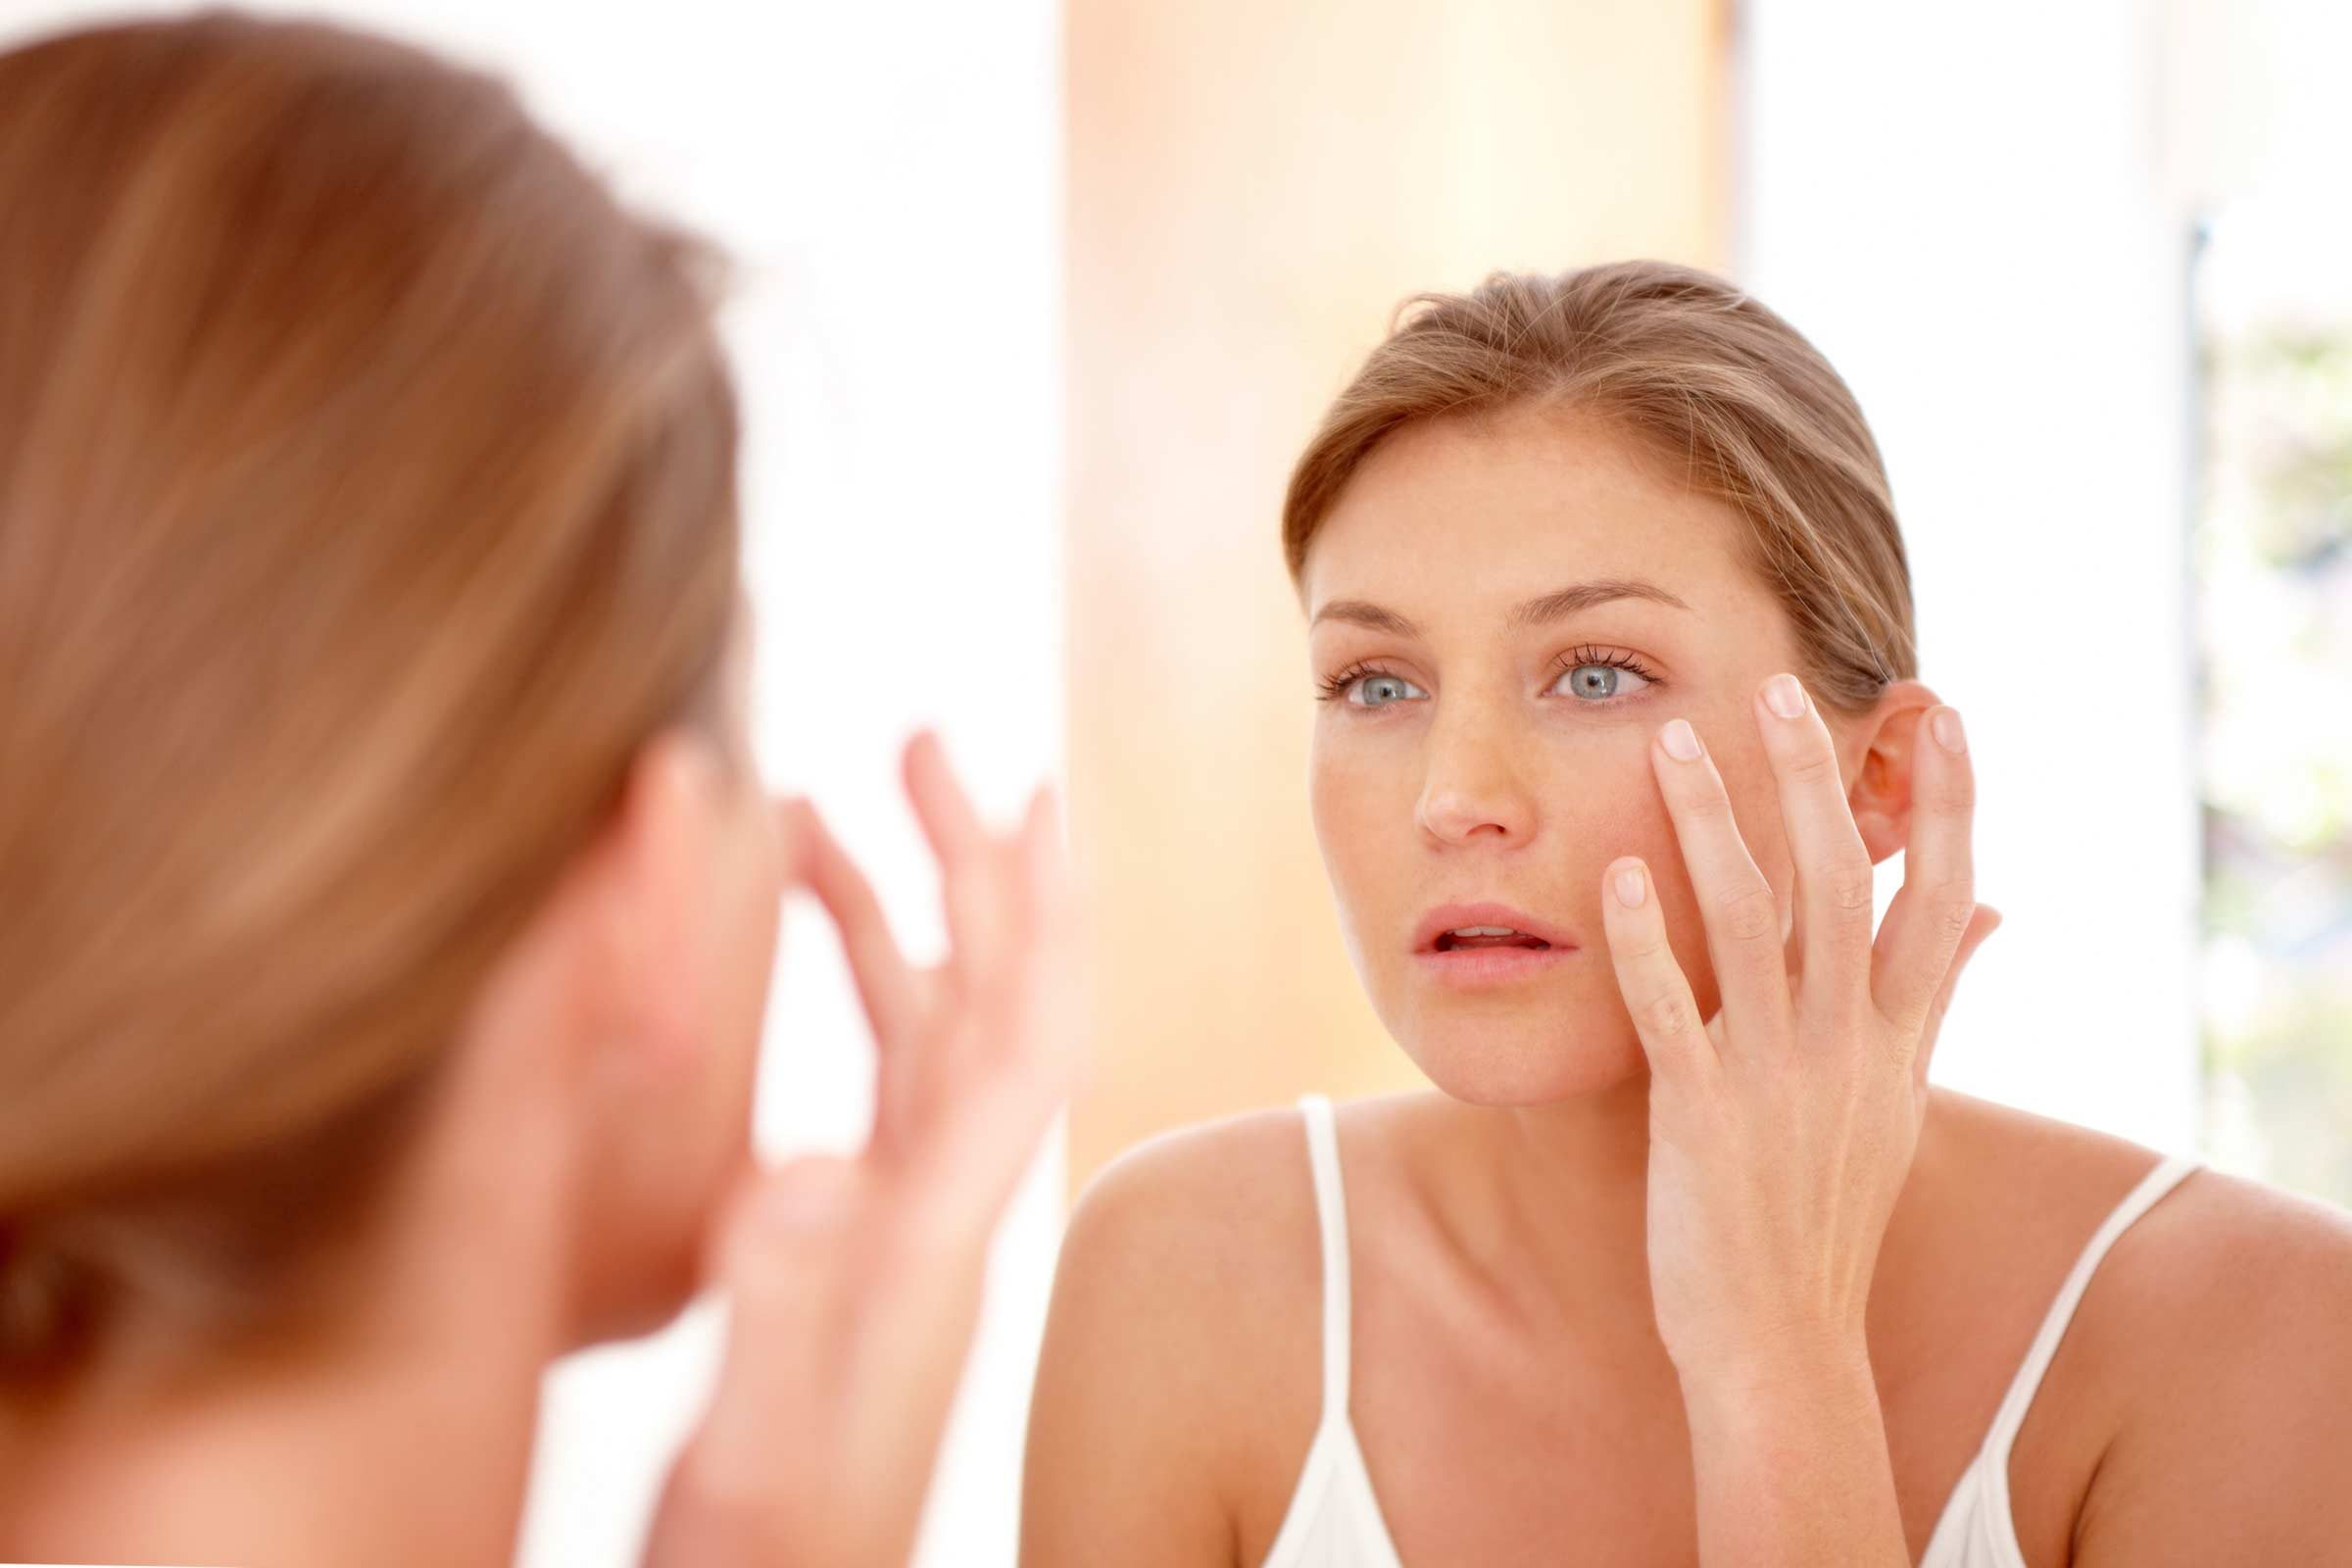 How to look younger 9 tricks dermatologists wont share dont switch products so often ccuart Image collections